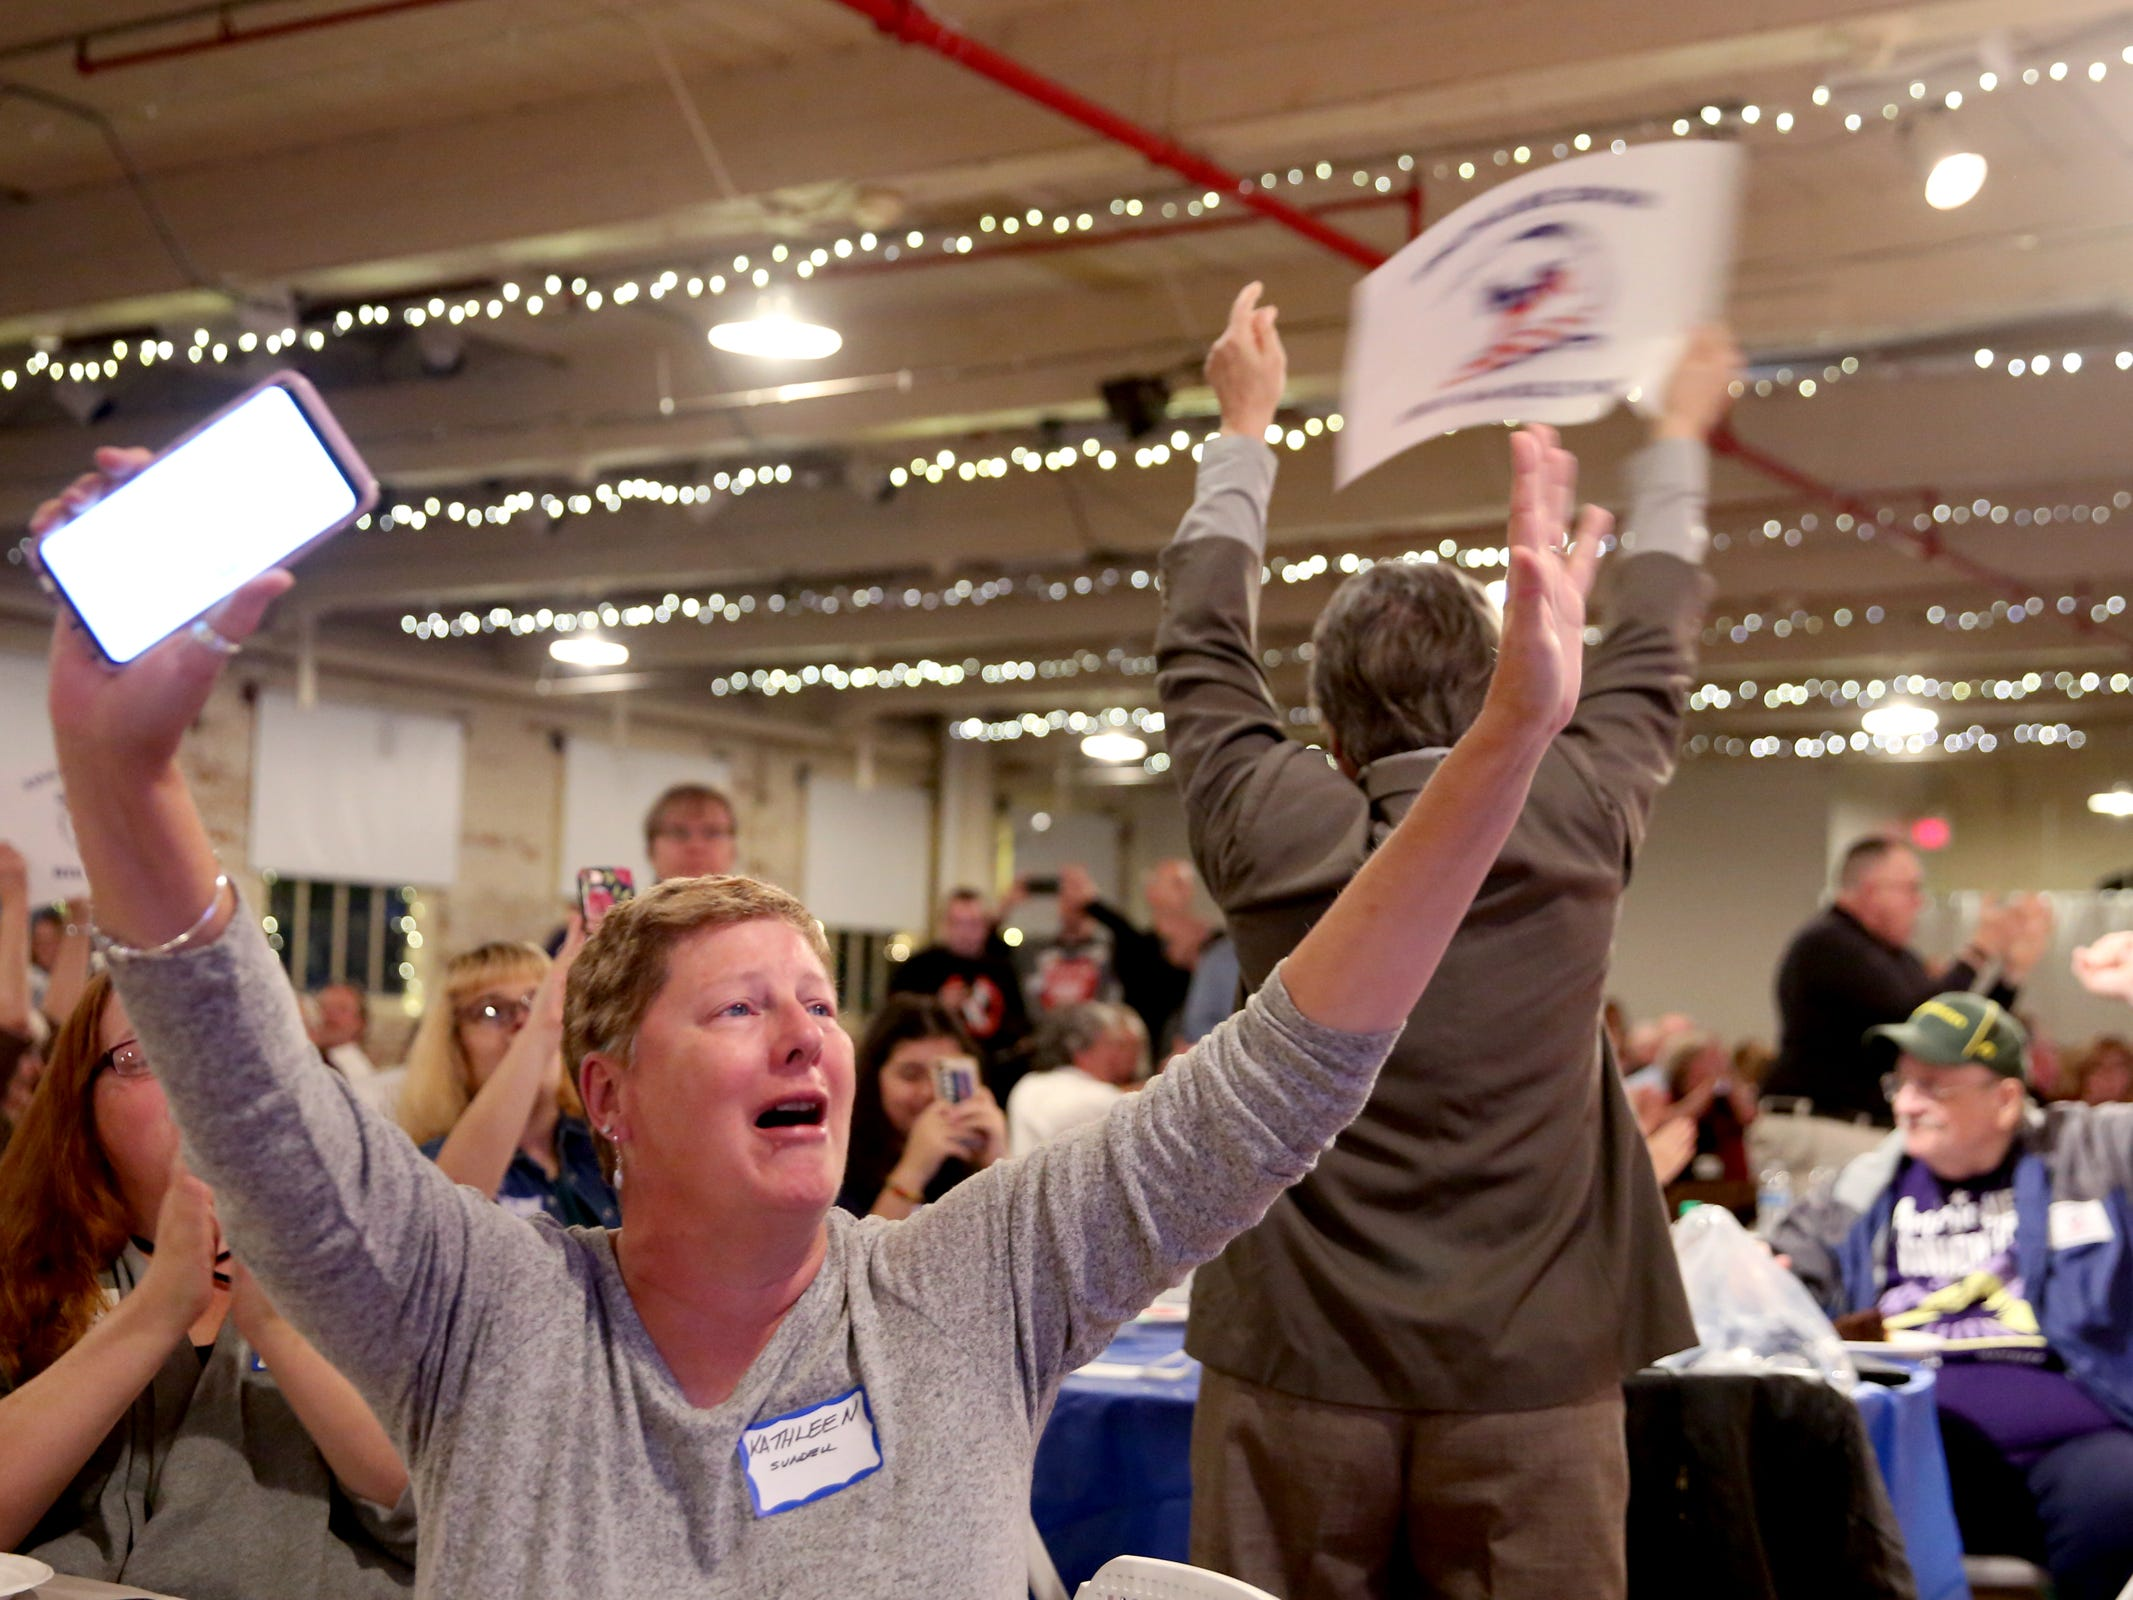 Kathleen Sundell, of Salem, cheers as results come in during an election night party hosted by Marion County Democrats and Polk County Democrats at the Willamette Heritage Center in Salem on Tuesday, Nov. 6, 2018.